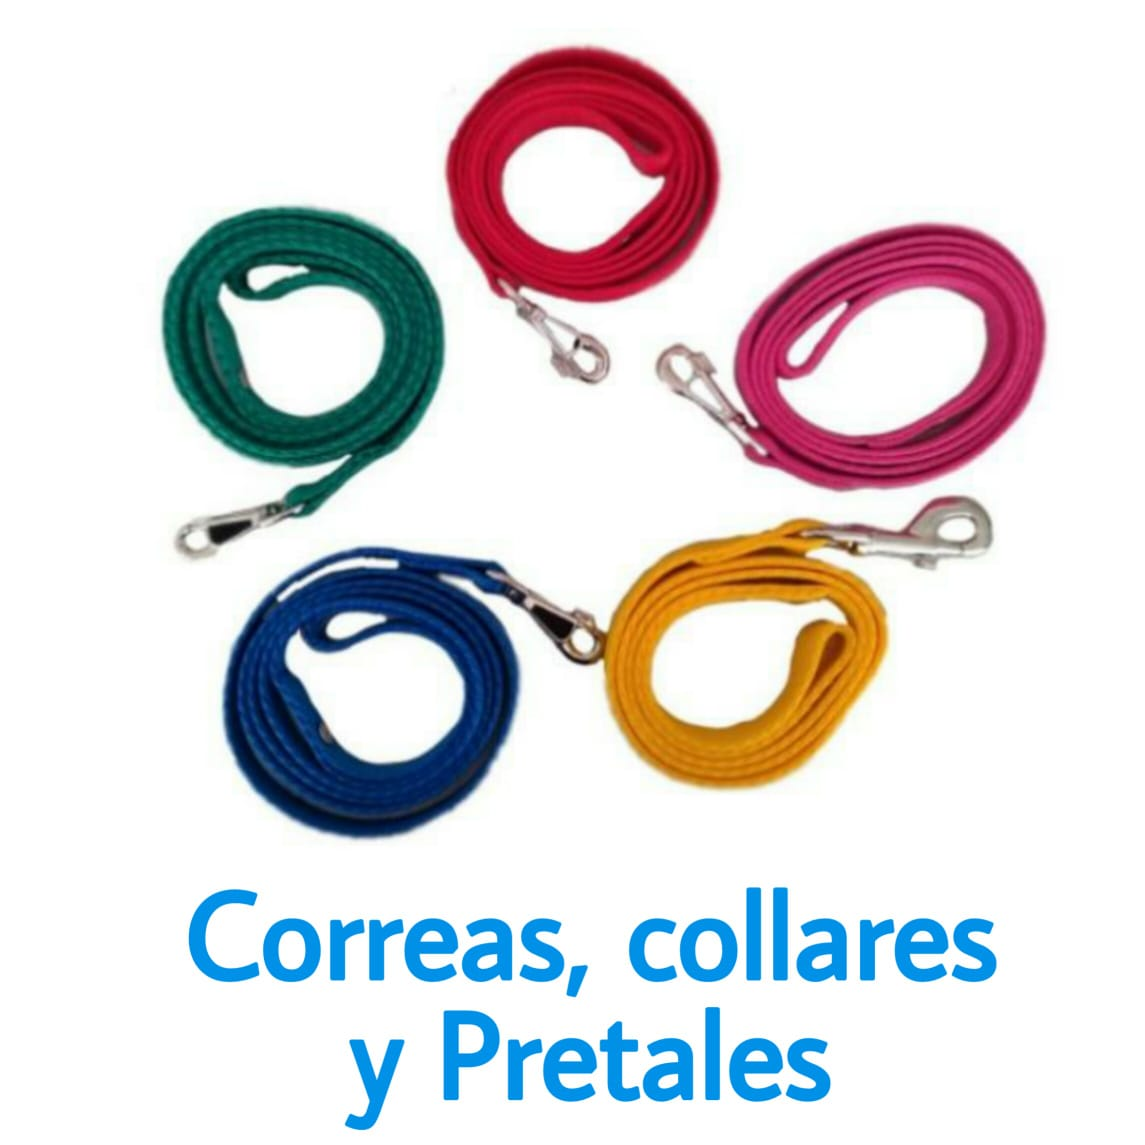 correas-collares-y-pretales